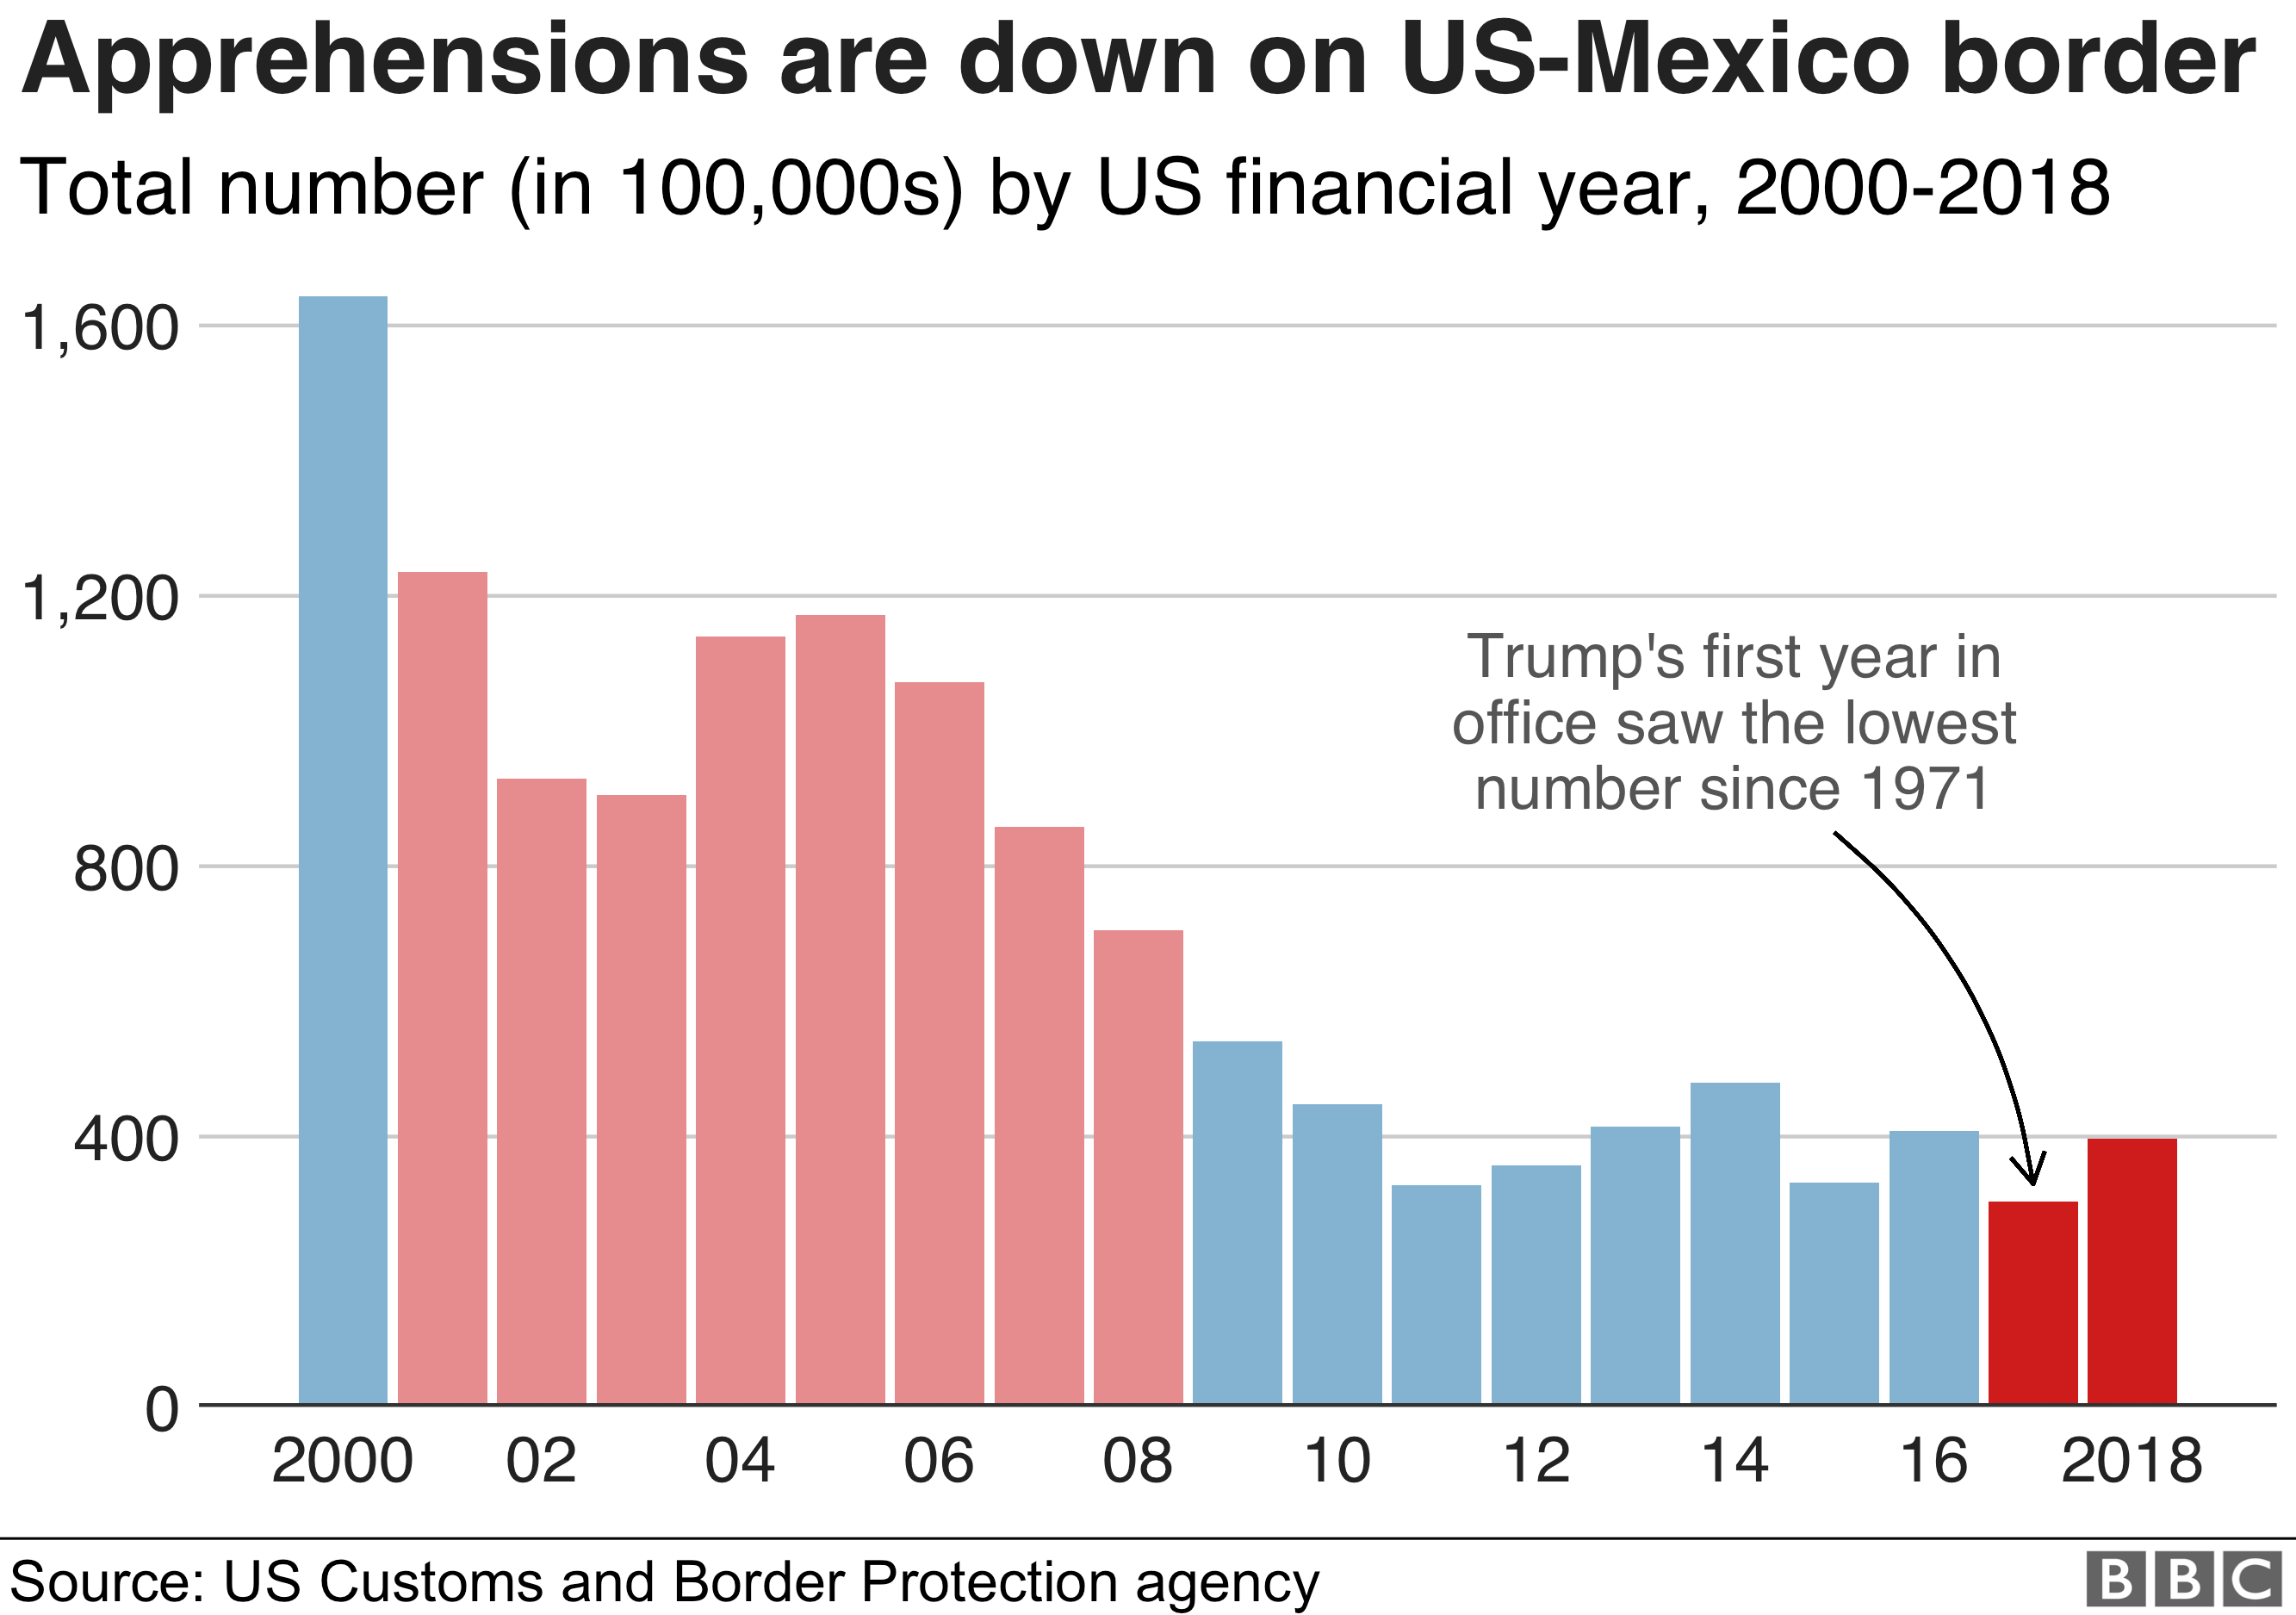 Chart showing how the number of apprehensions of illegal immigrants at the US-Mexico border have fallen in recent years